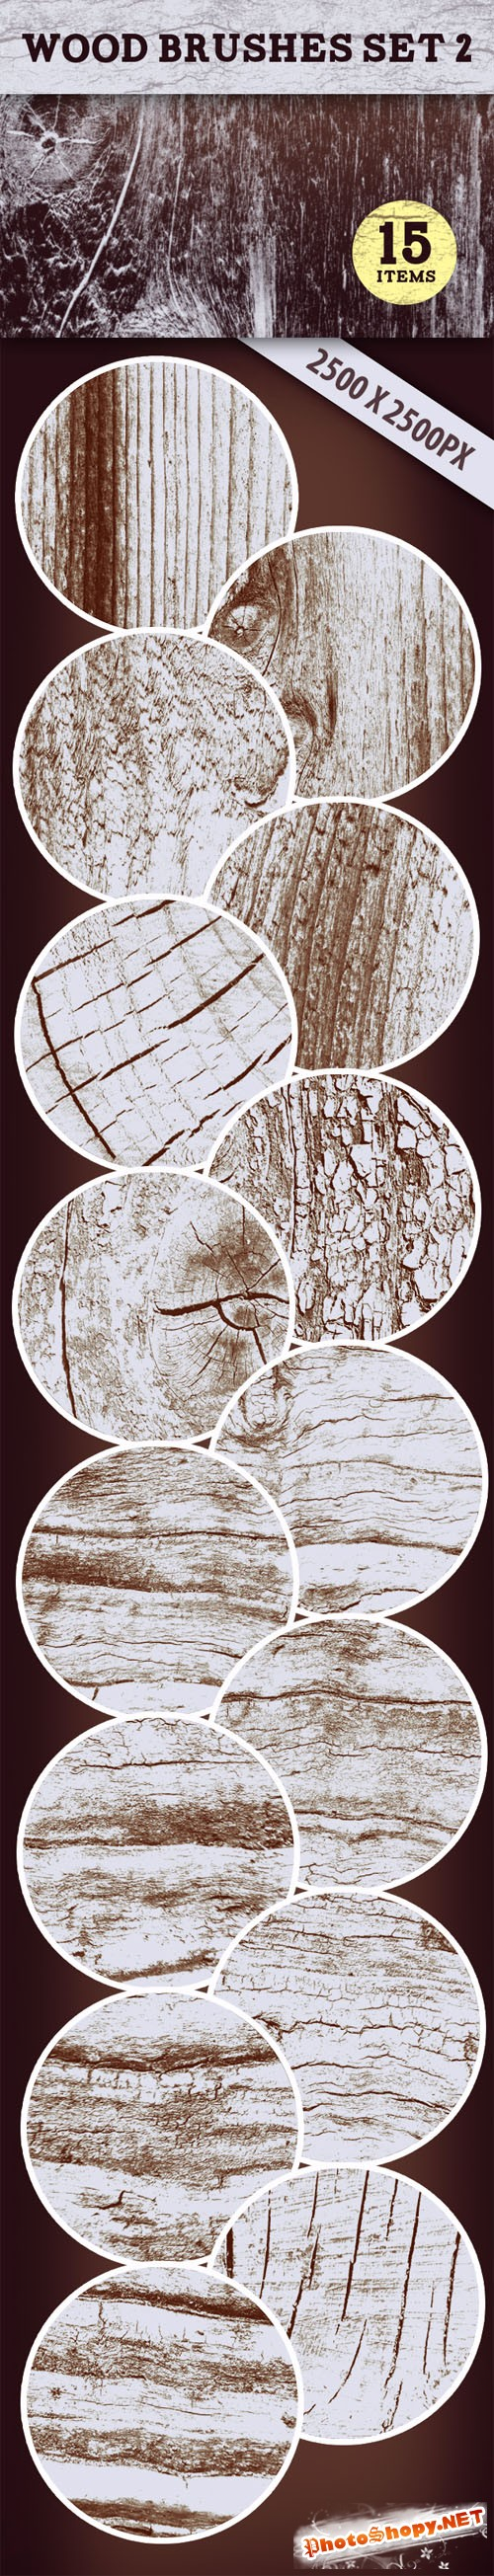 Designtnt - Wood PS Brushes Set 2